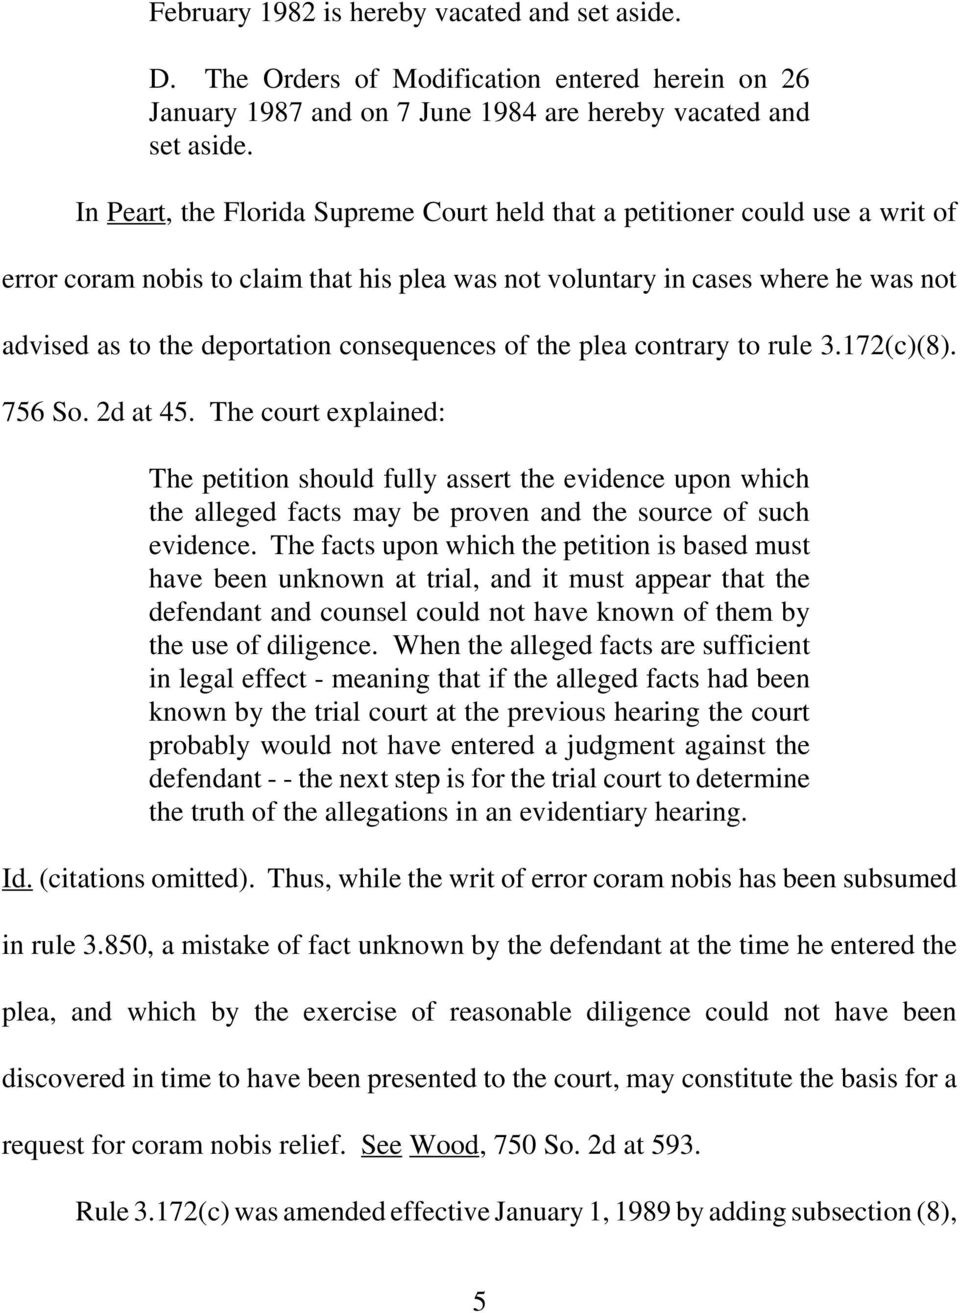 consequences of the plea contrary to rule 3.172(c)(8). 756 So. 2d at 45.